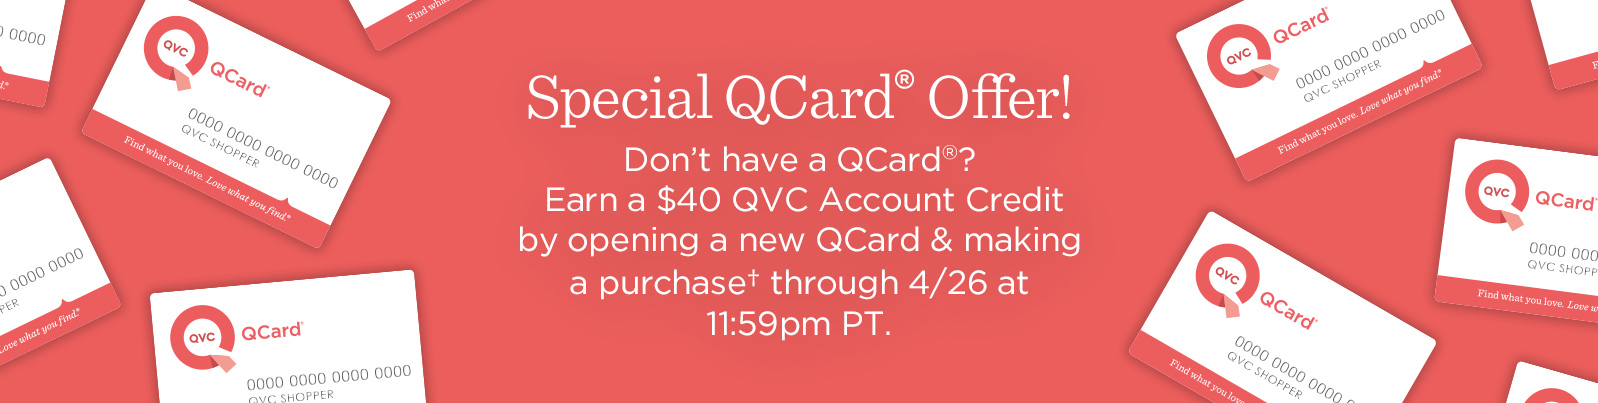 Special QCard® Offer  Don't have a QCard®? Enjoy a $20 QVC Account Credit when you open a new QCard & make a purchase.† Offer ends 4/22 at 11:59pm PT.Special QCard® Offer! Don't have a QCard? Earn a $40 QVC Account Credit by opening a new QCard & making a purchase† through 4/26 at 11:59pm PT.